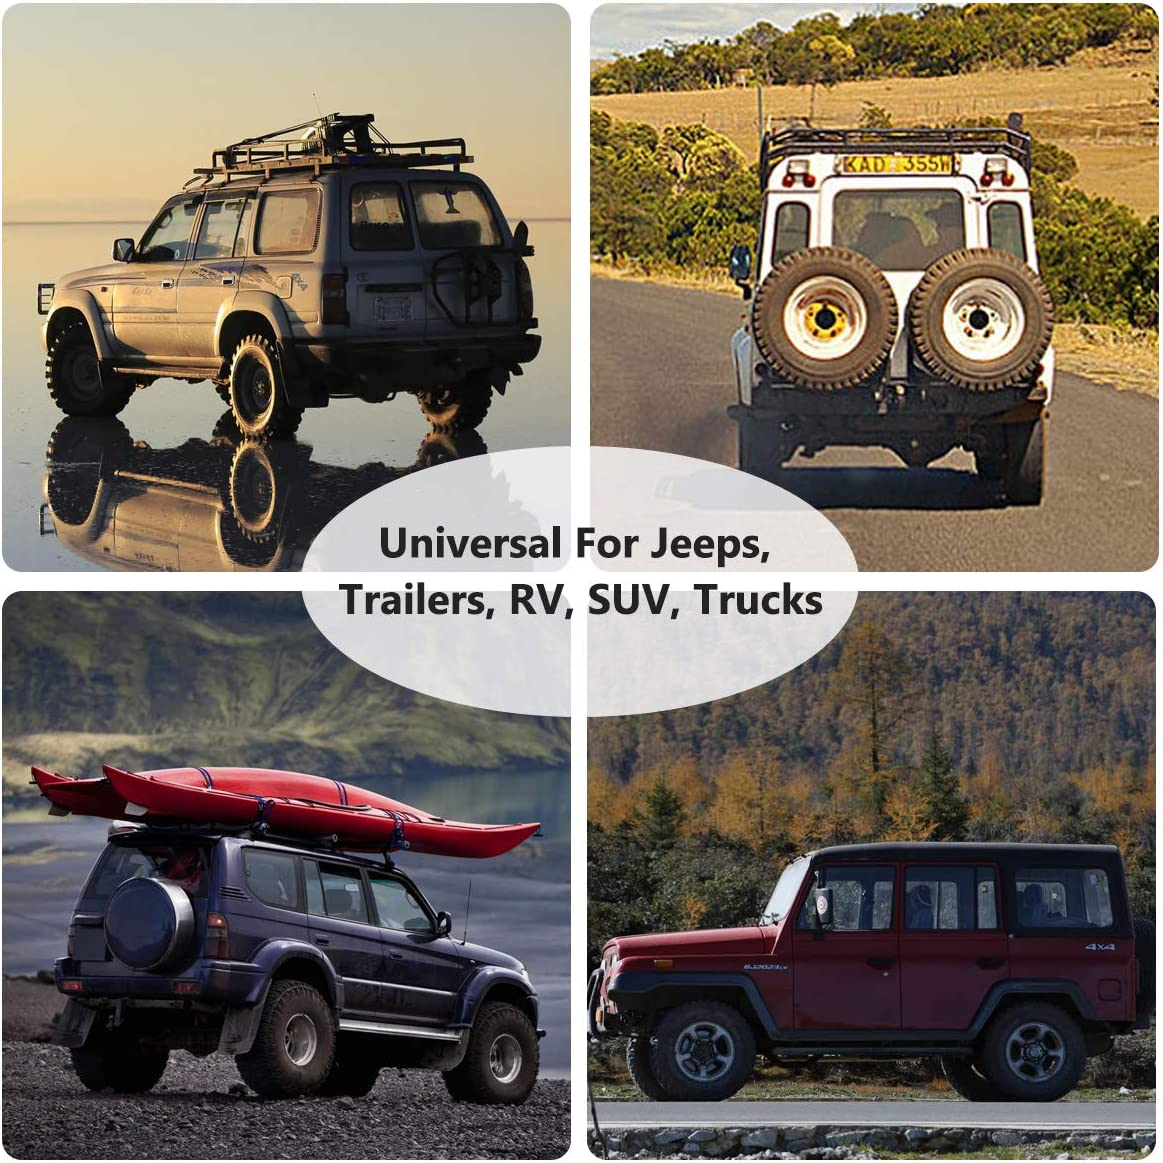 14 15 16 17 Dizzy-K Boston Terrier Spare Tire Cover Polyester Waterproof Adjustable Universal Portable Wheel Covers Fits for Jeep Trailer RV SUV Truck Camper Travel Trailer Accessories